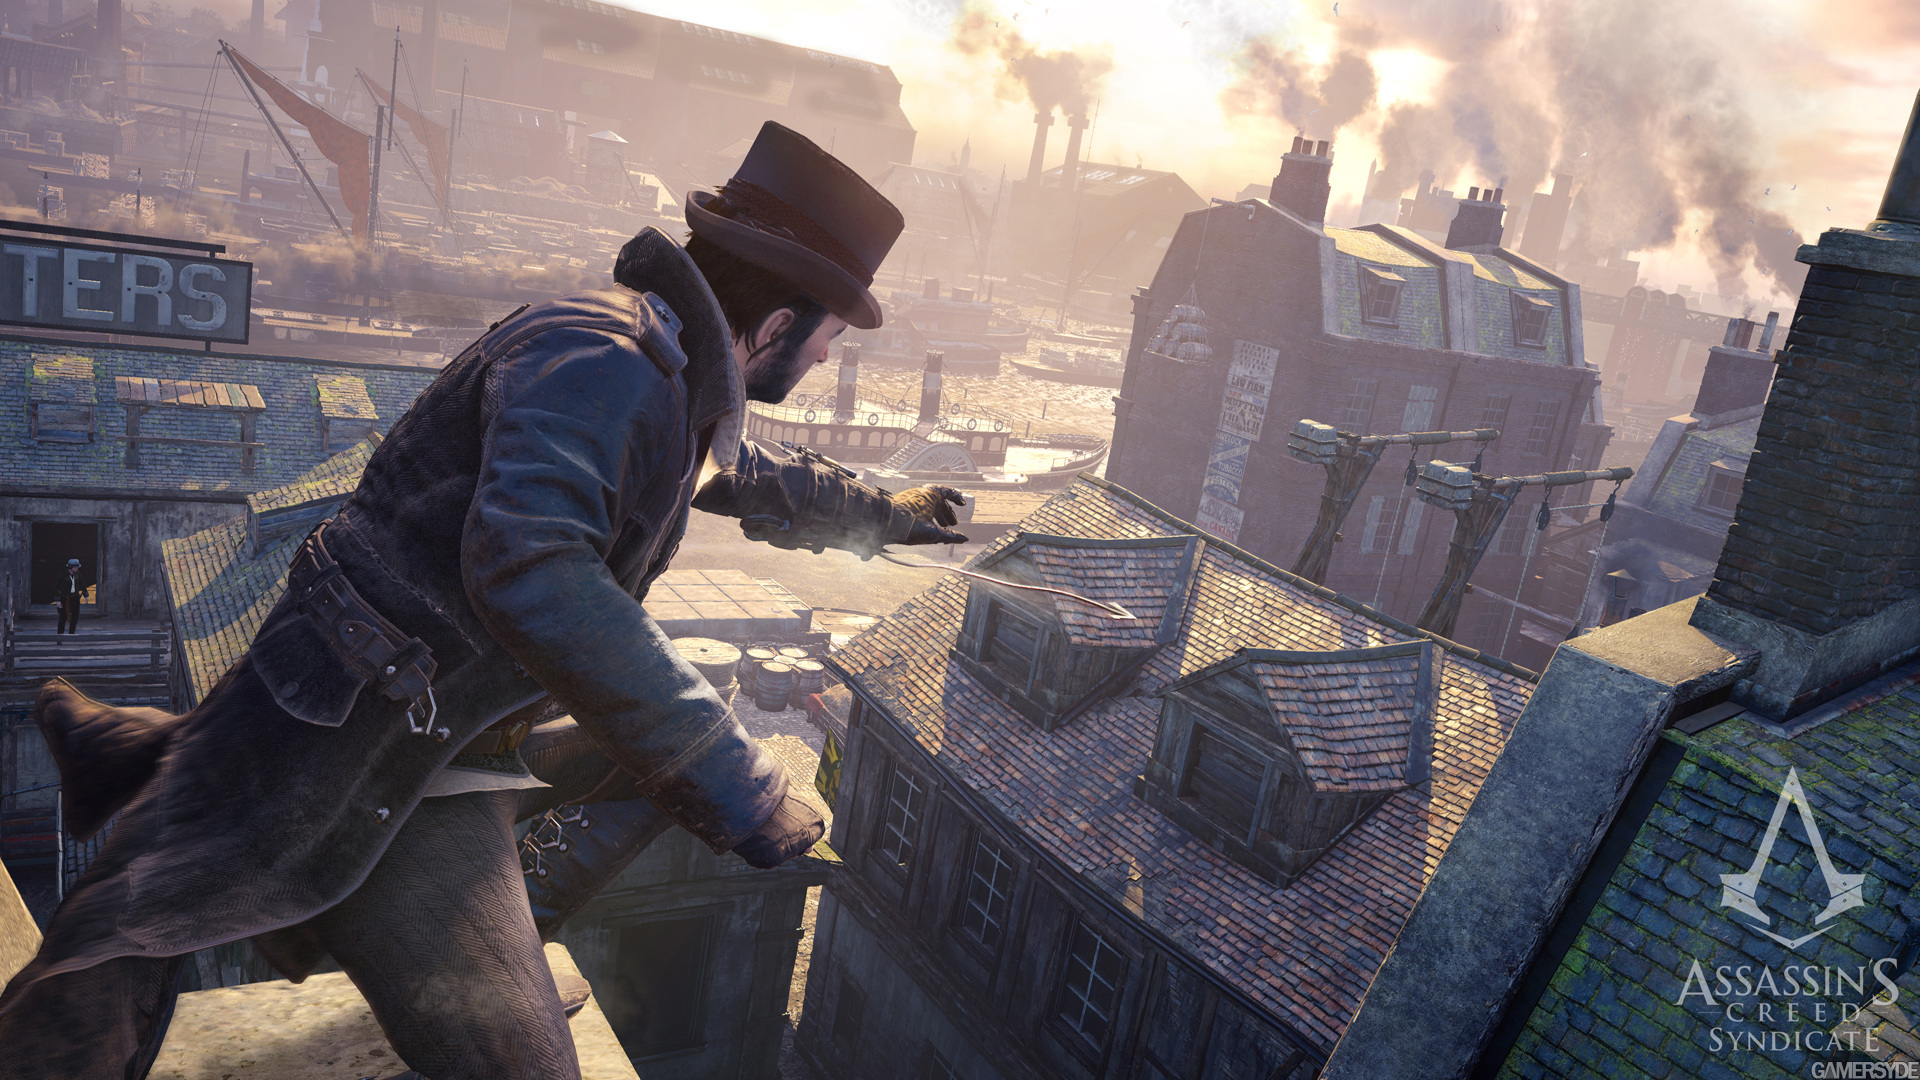 image_assassin_s_creed_syndicate-28271-3228_0005